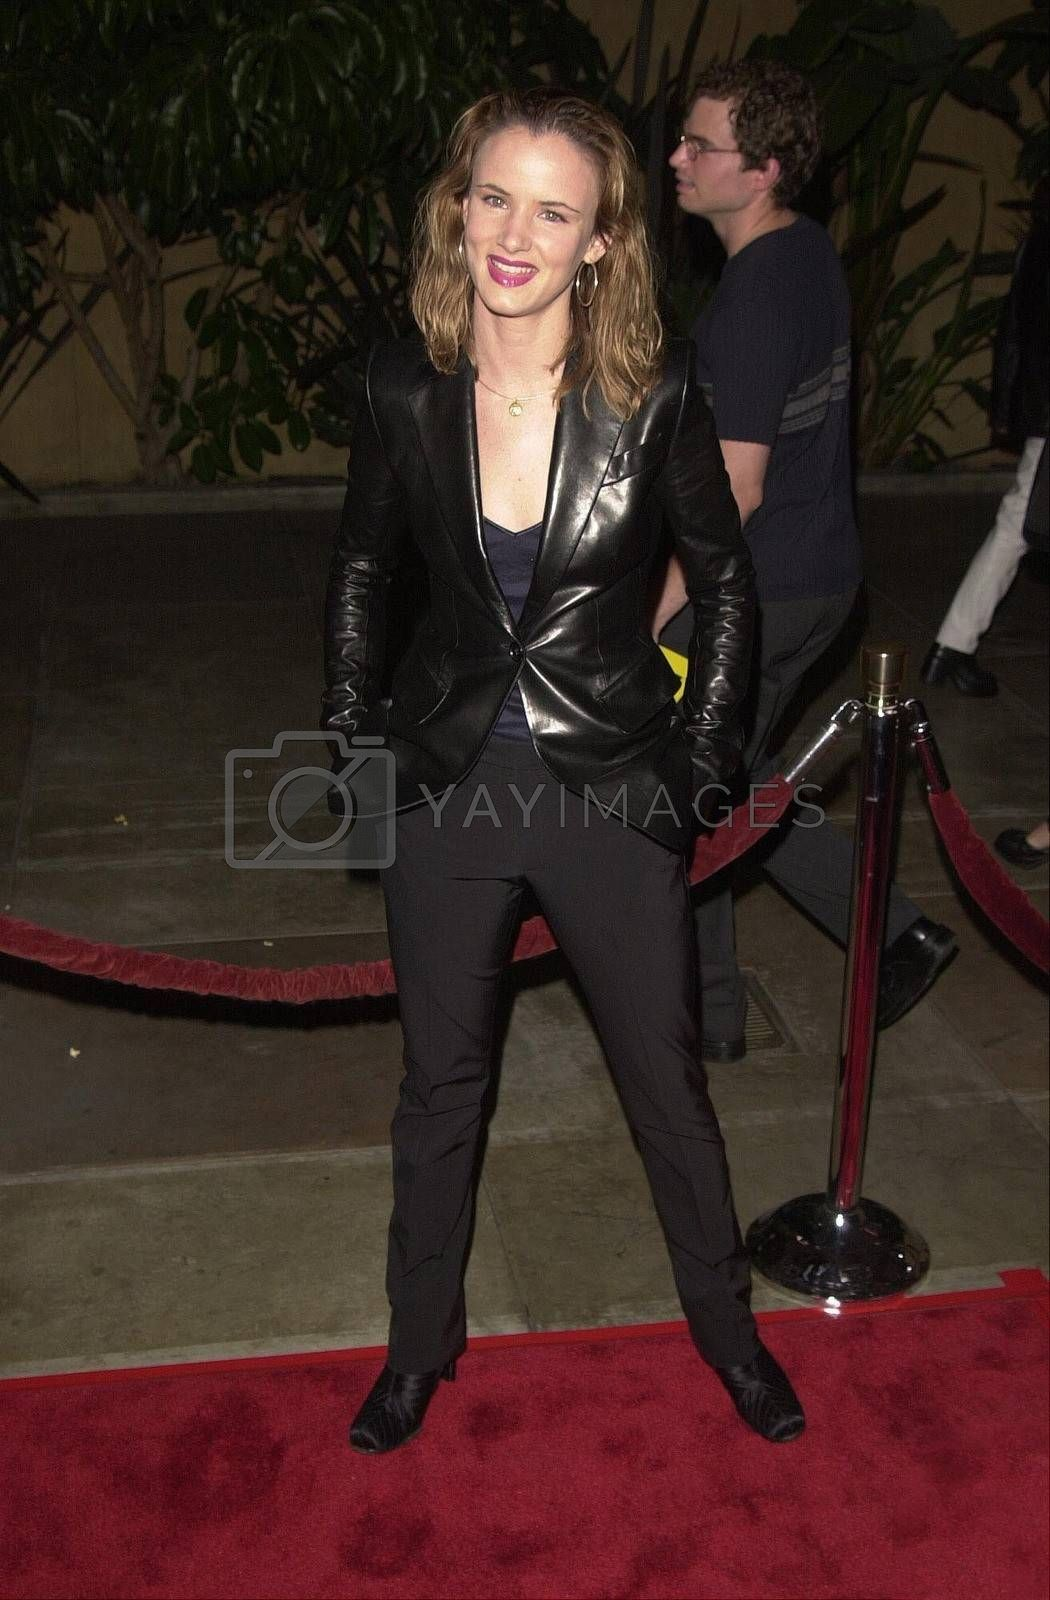 Juliette Lewis at the premiere of The Way Of The Gun in Hollywood. 08-29-00